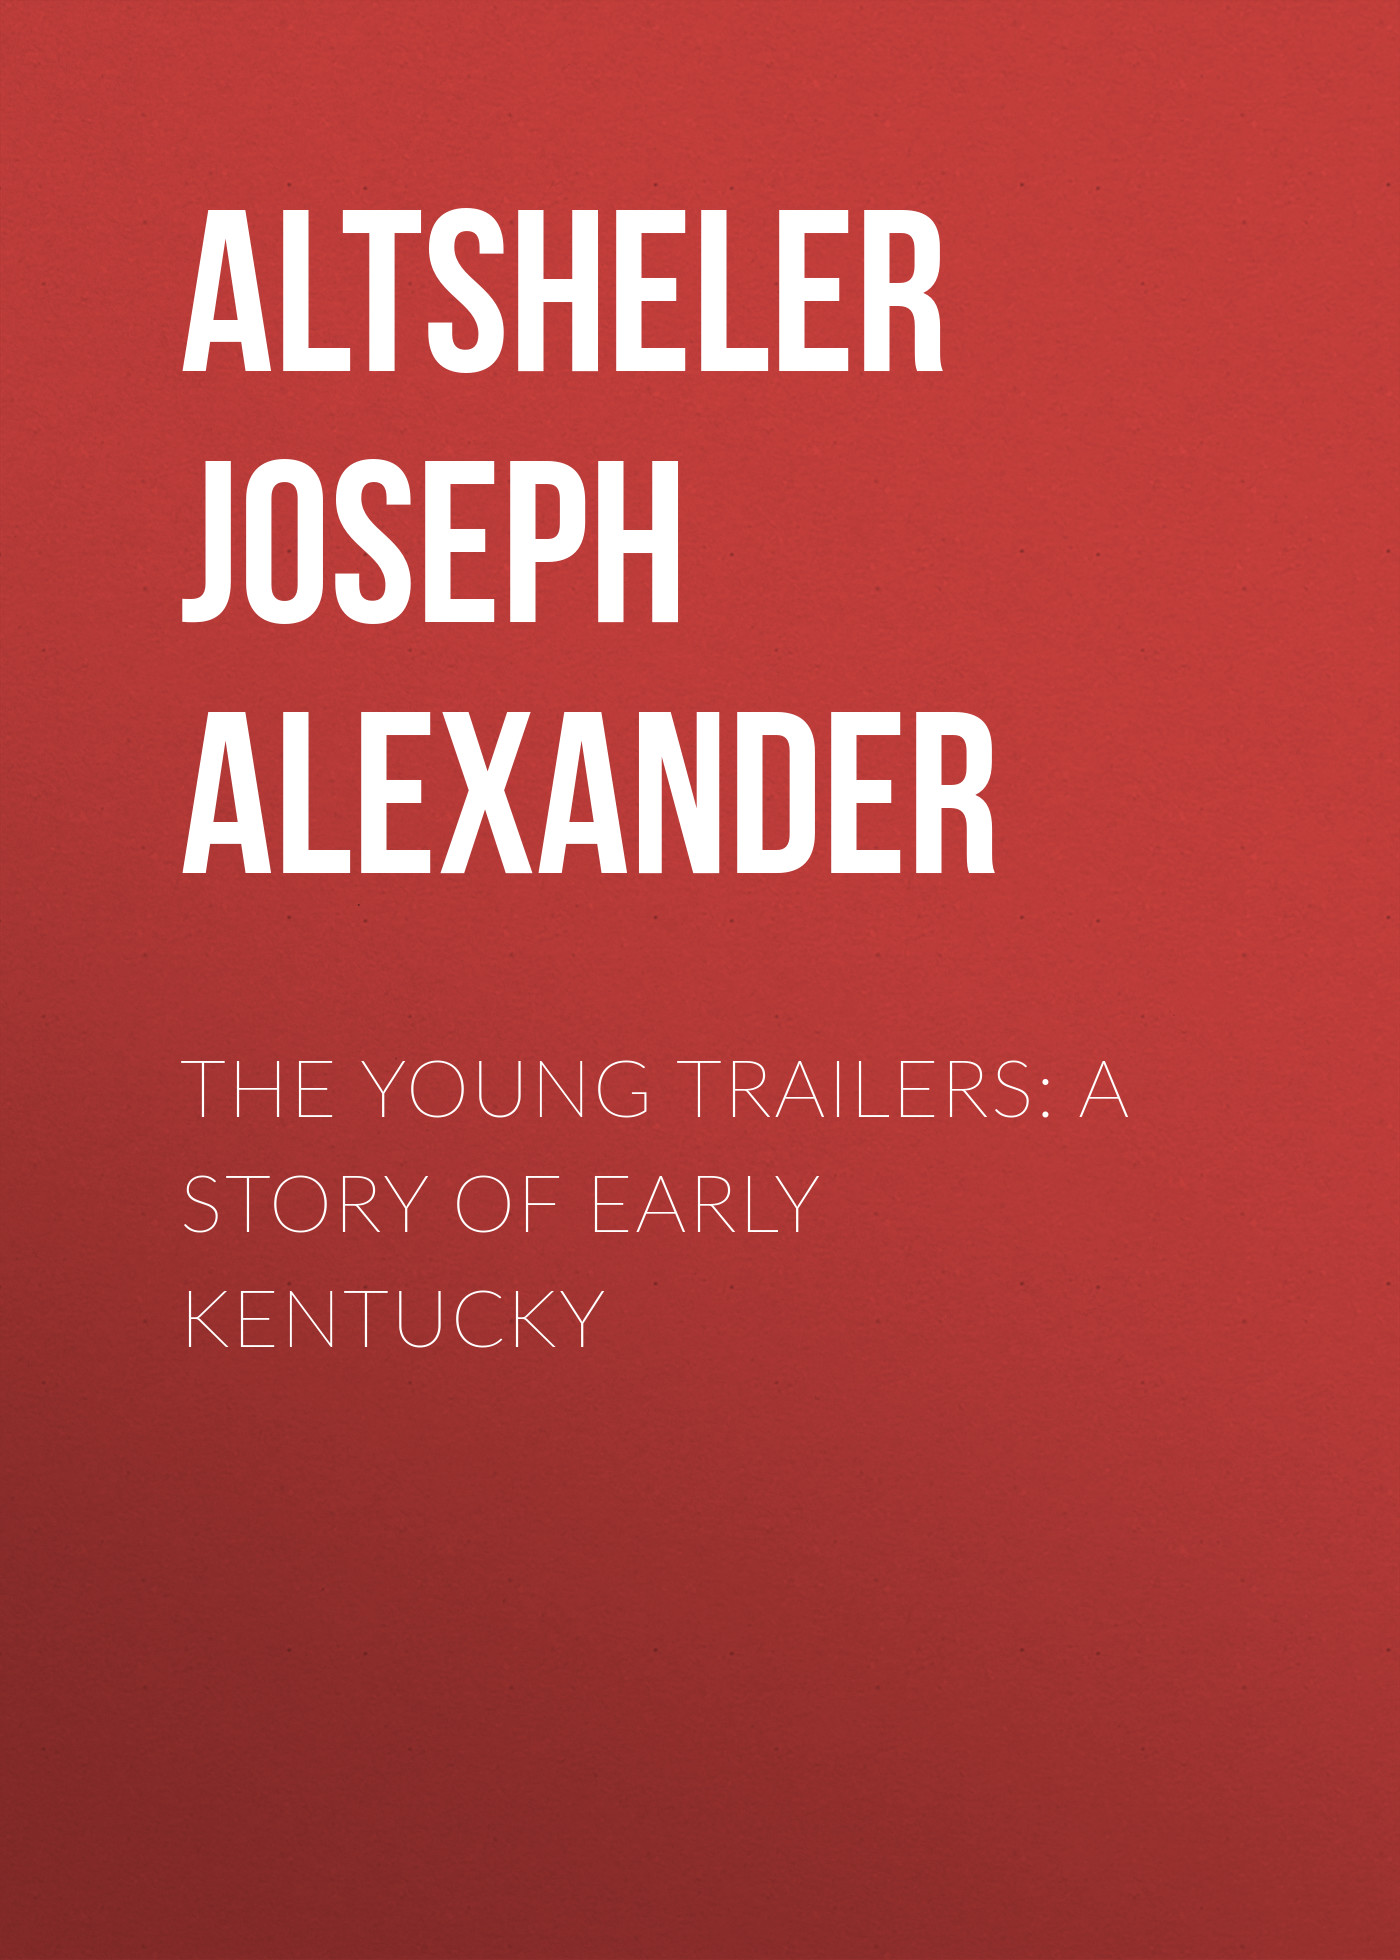 The Young Trailers: A Story of Early Kentucky